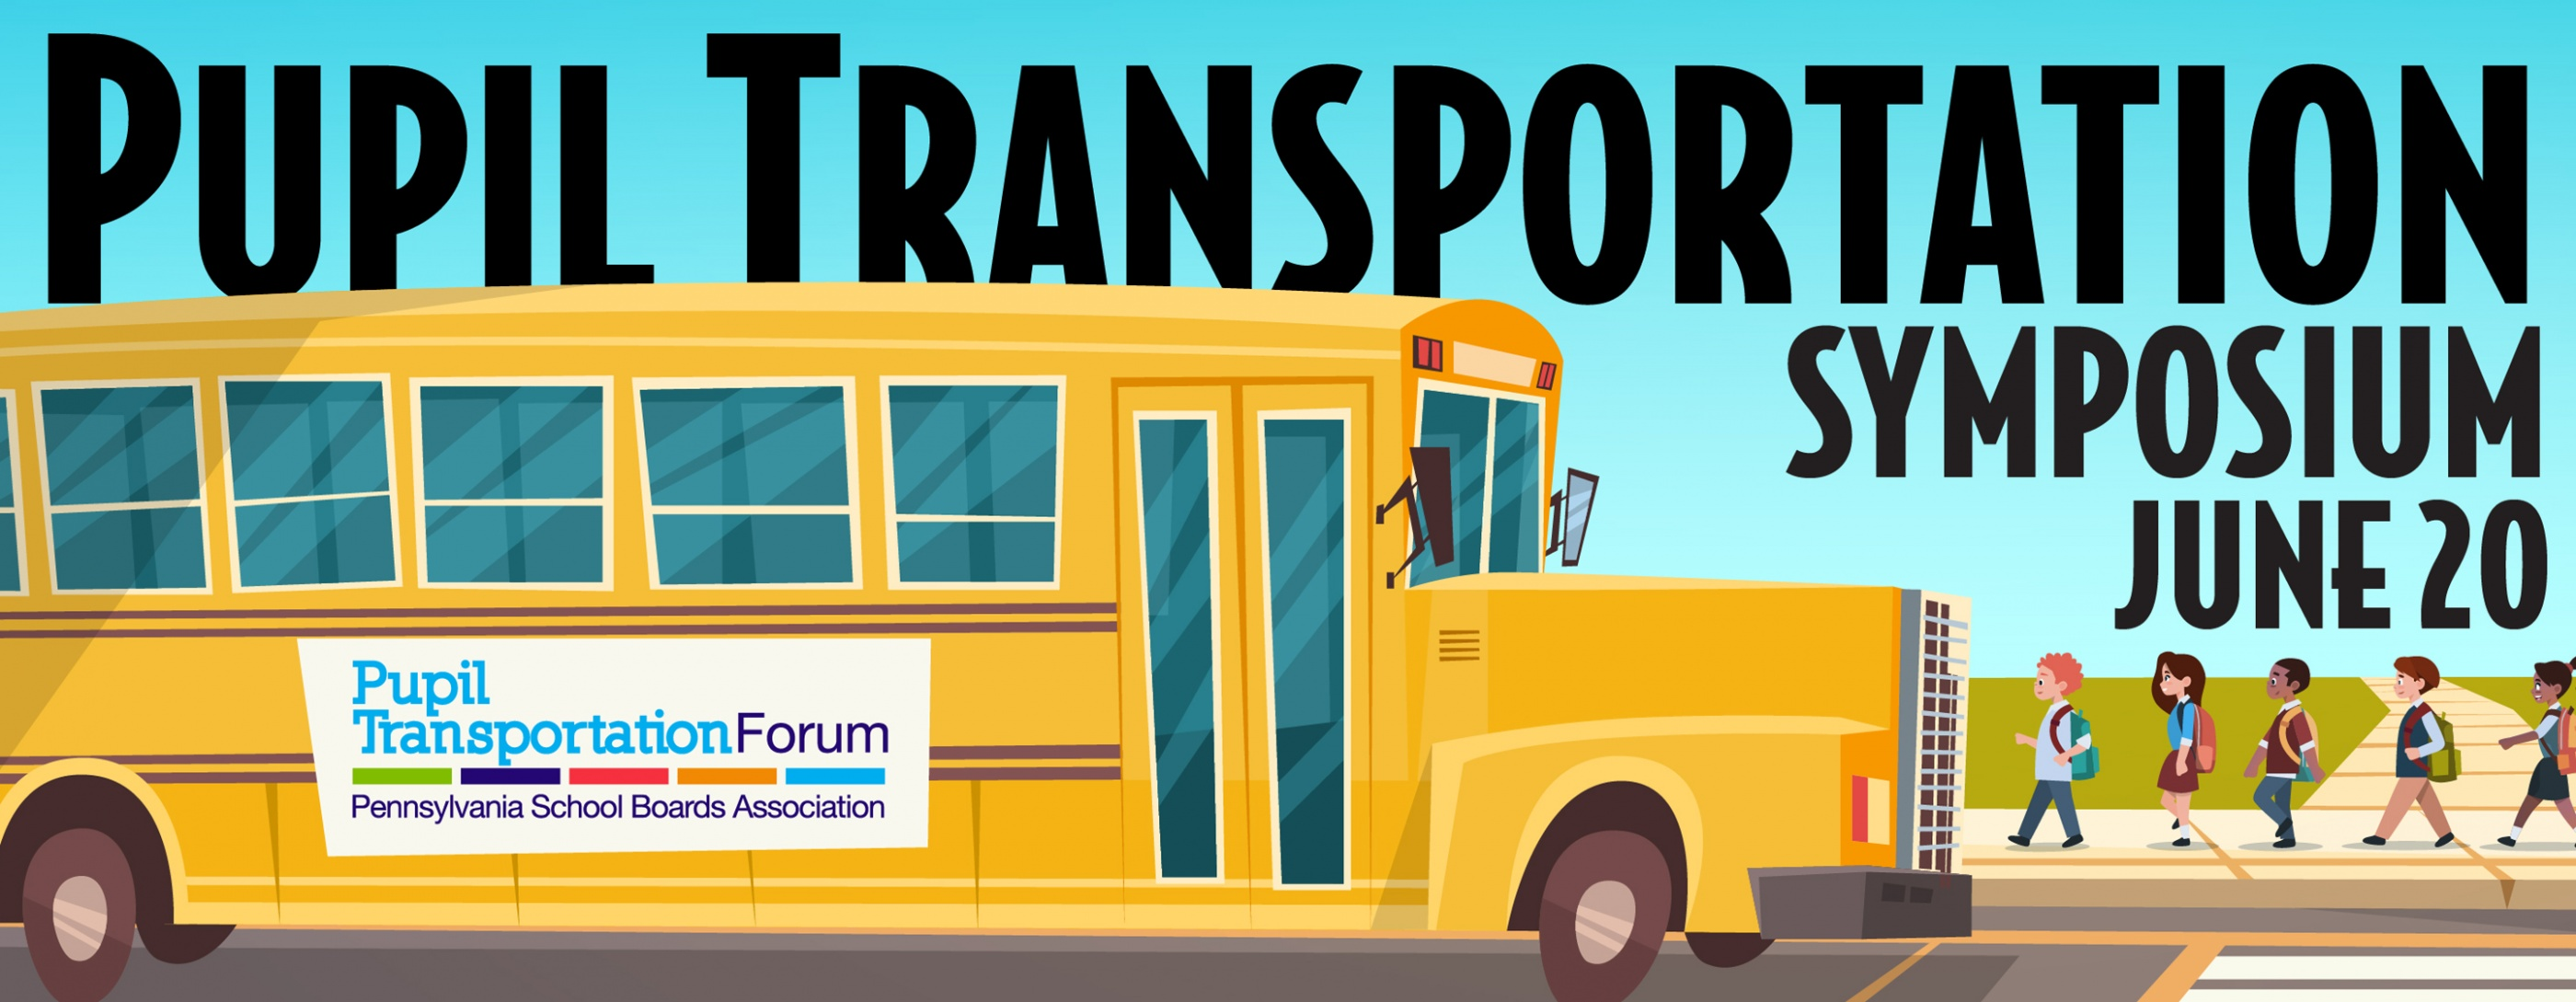 Pupil Transportation Symposium, June 20